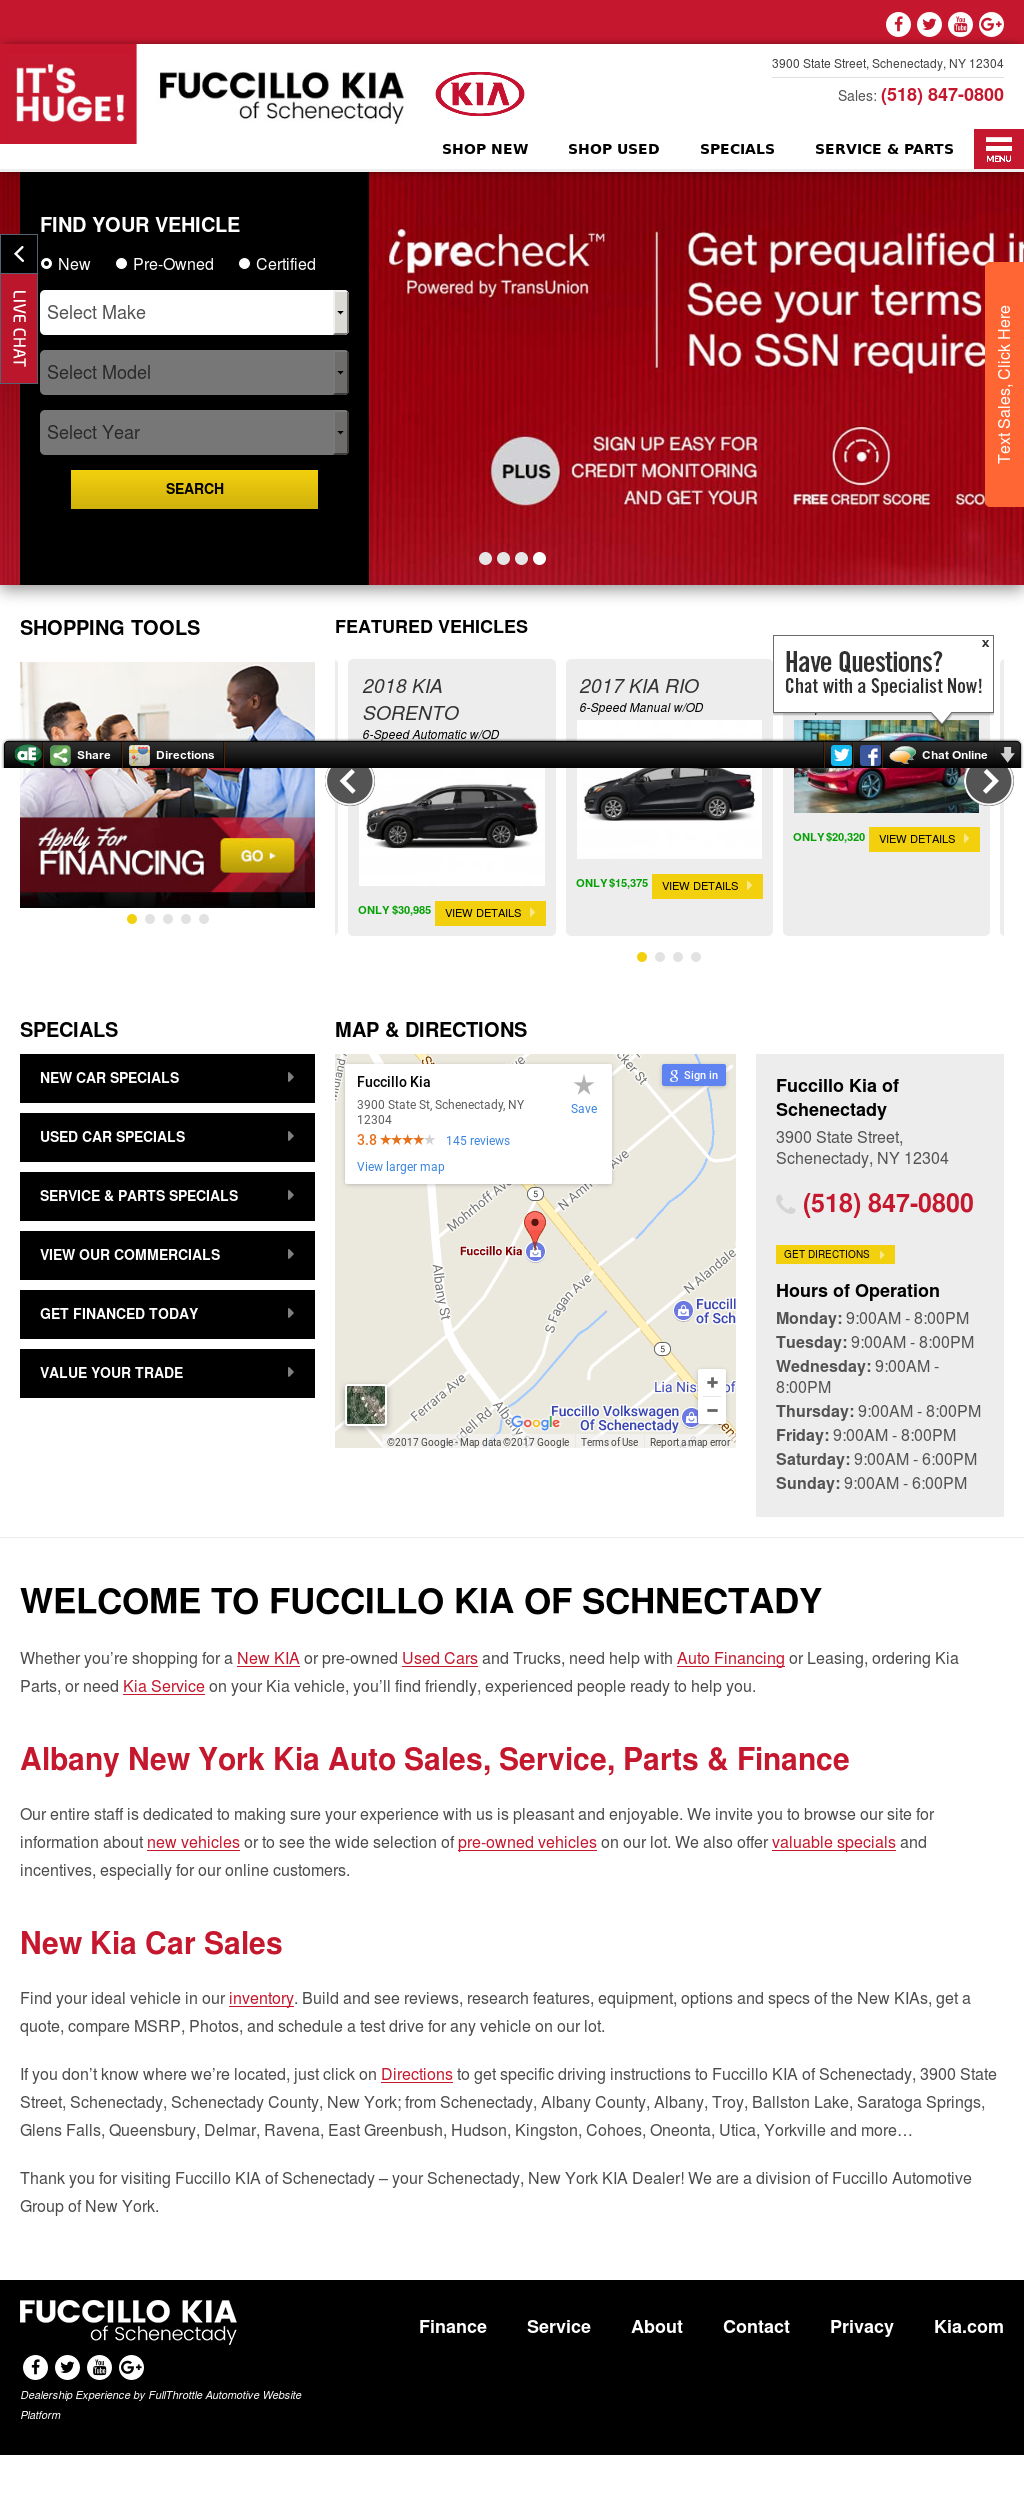 Fuccillo Kia Website History